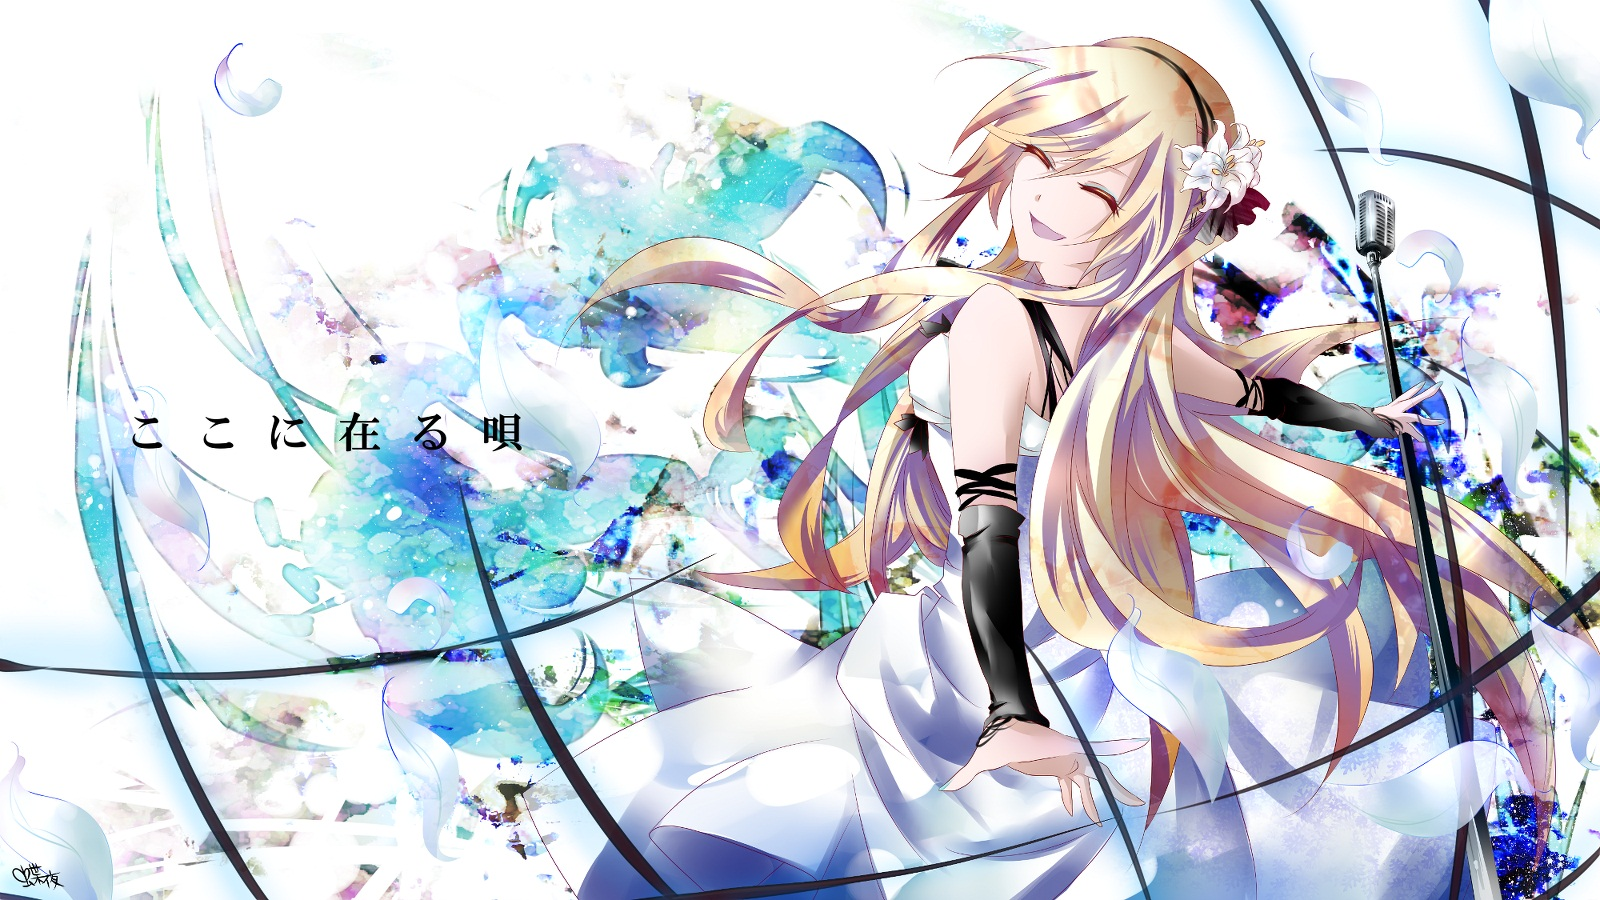 lily vocaloid wallpaper - photo #6